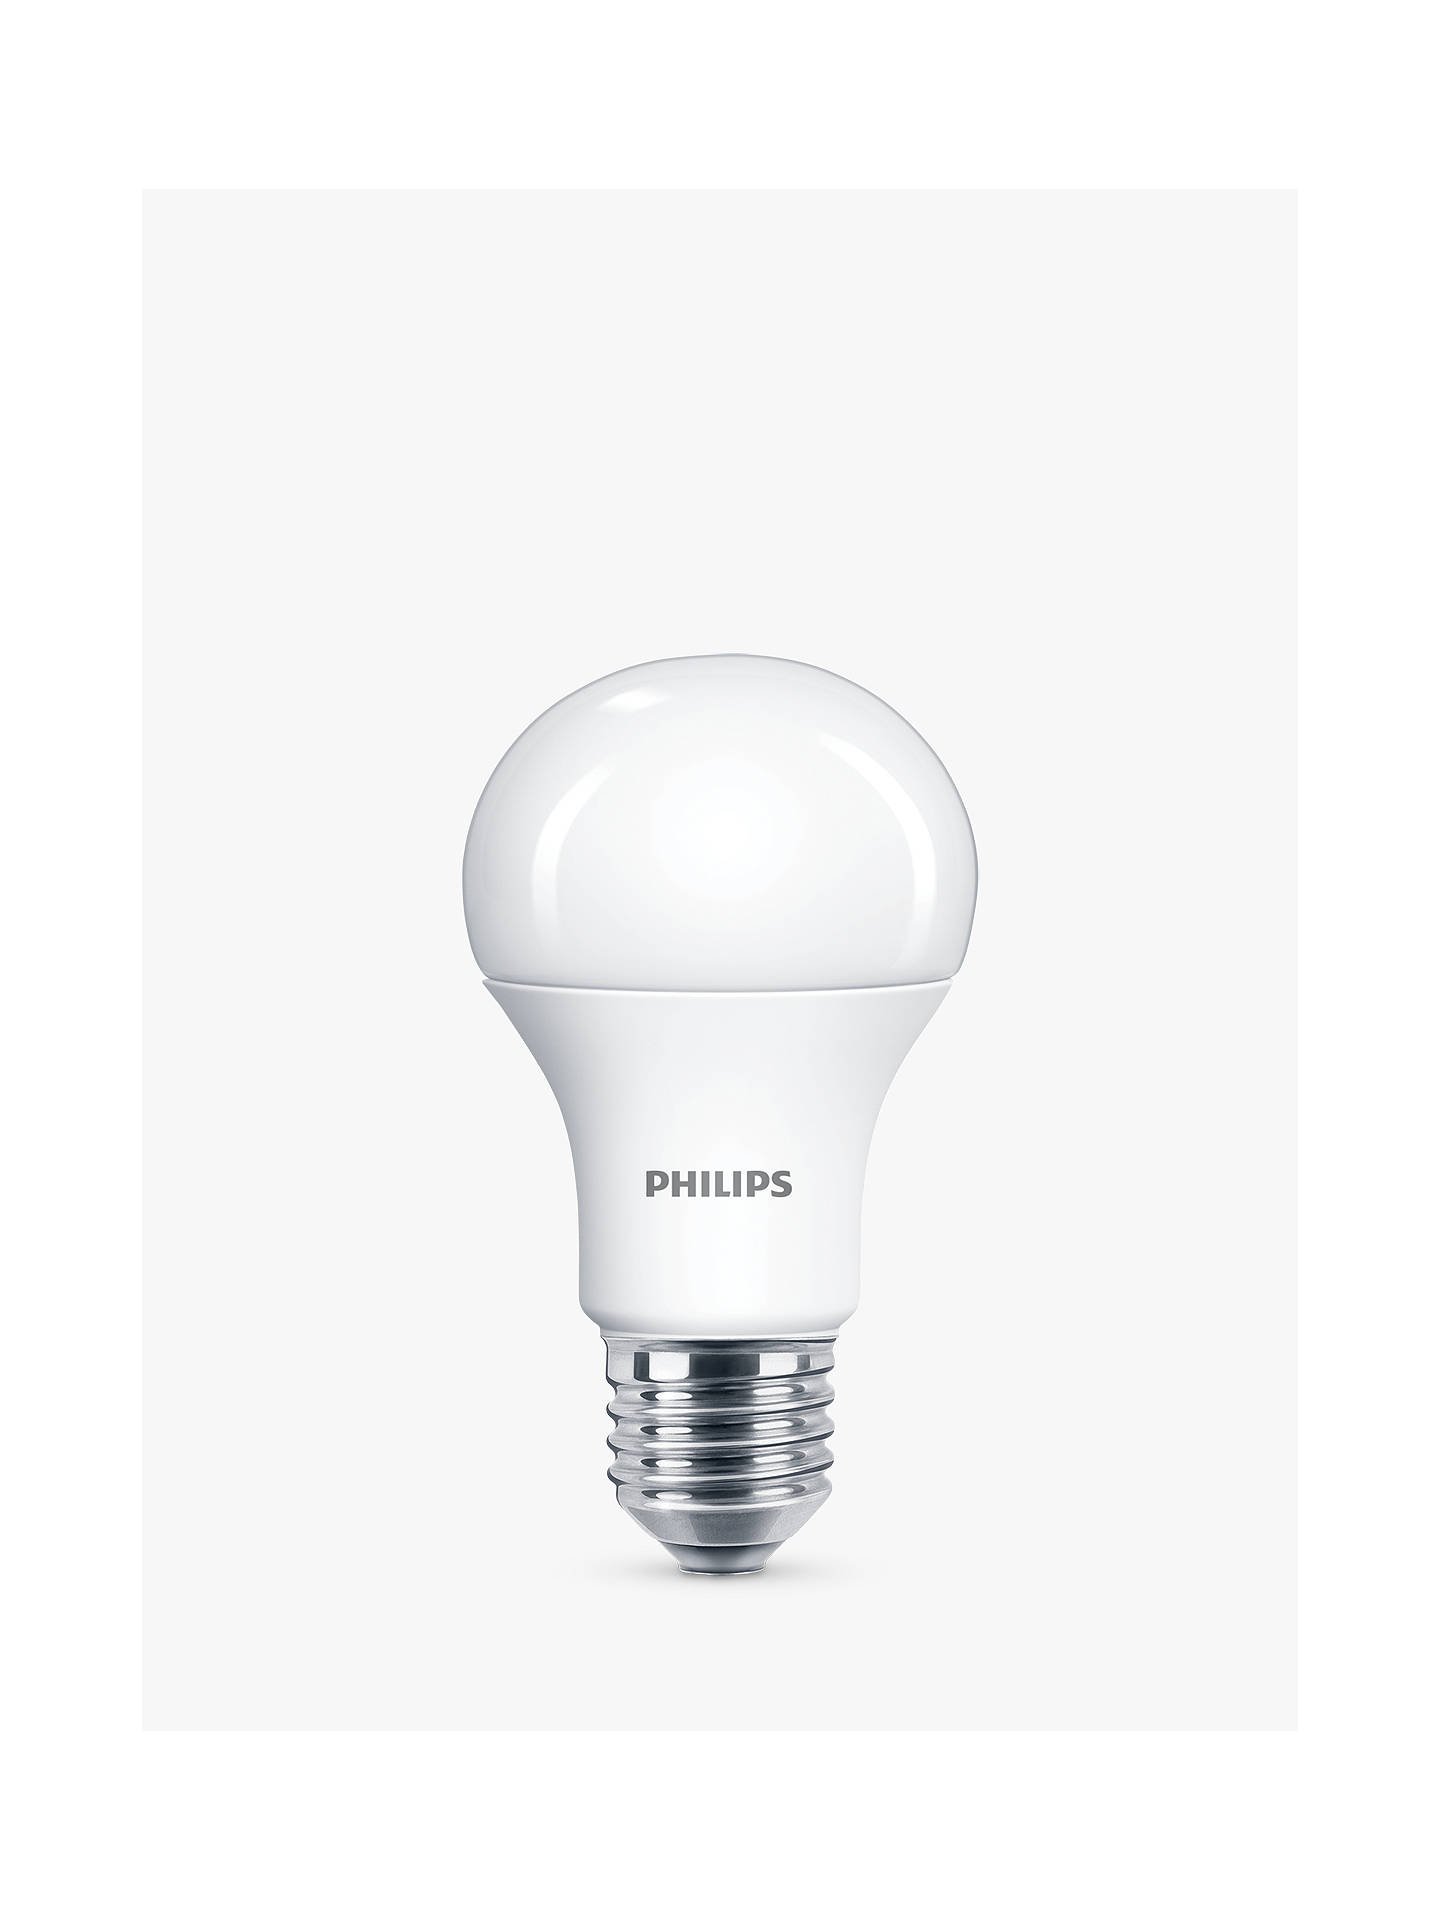 Buy Philips 10W ES LED Daylight Bulb, Frosted, 6500K Online at johnlewis.com